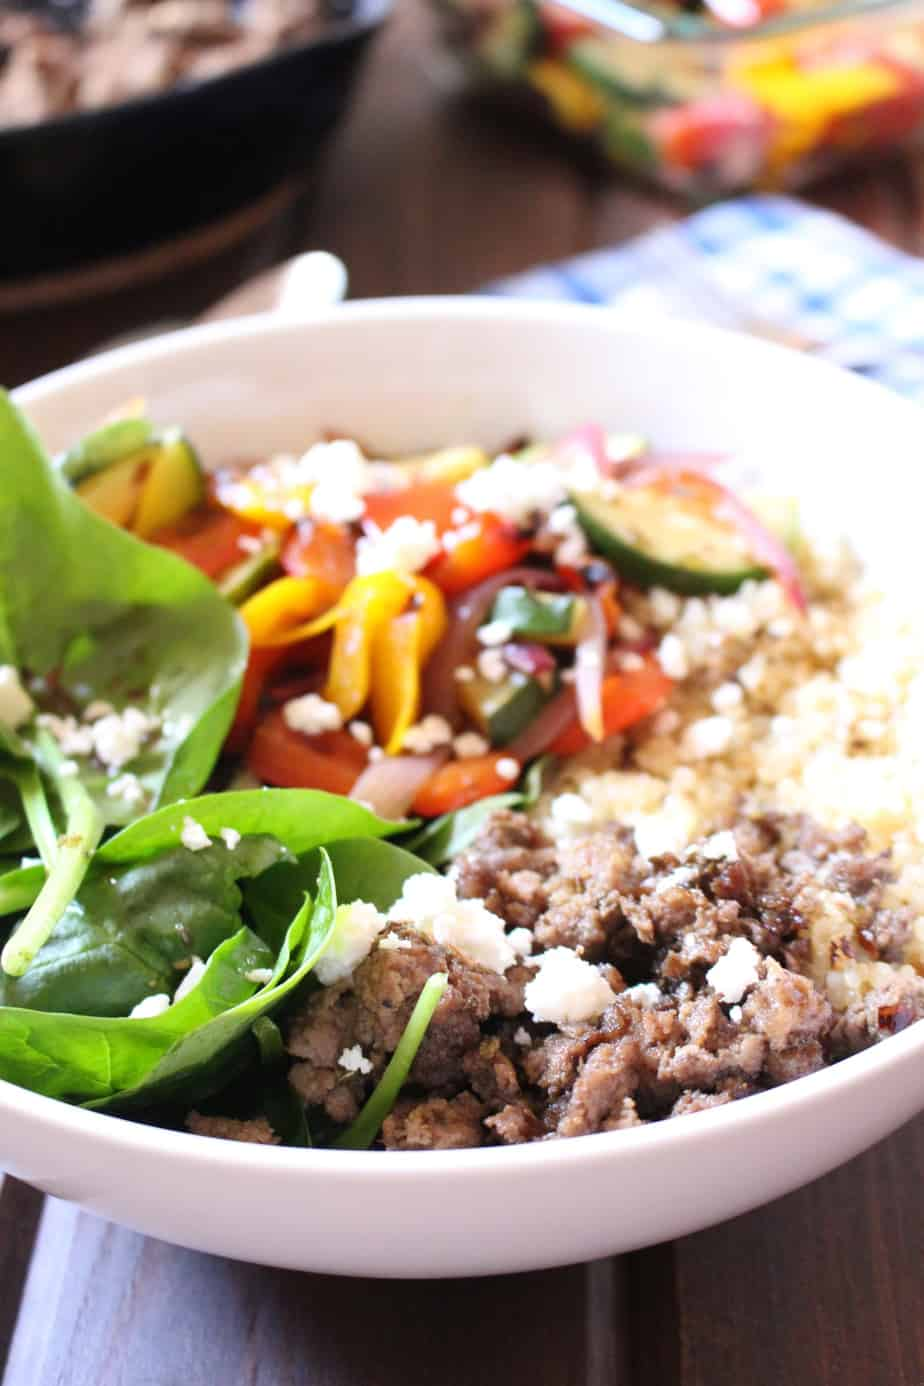 Quinoa Bowl with Mediterranean Ground Beef and Veggies | Frugal Nutrition